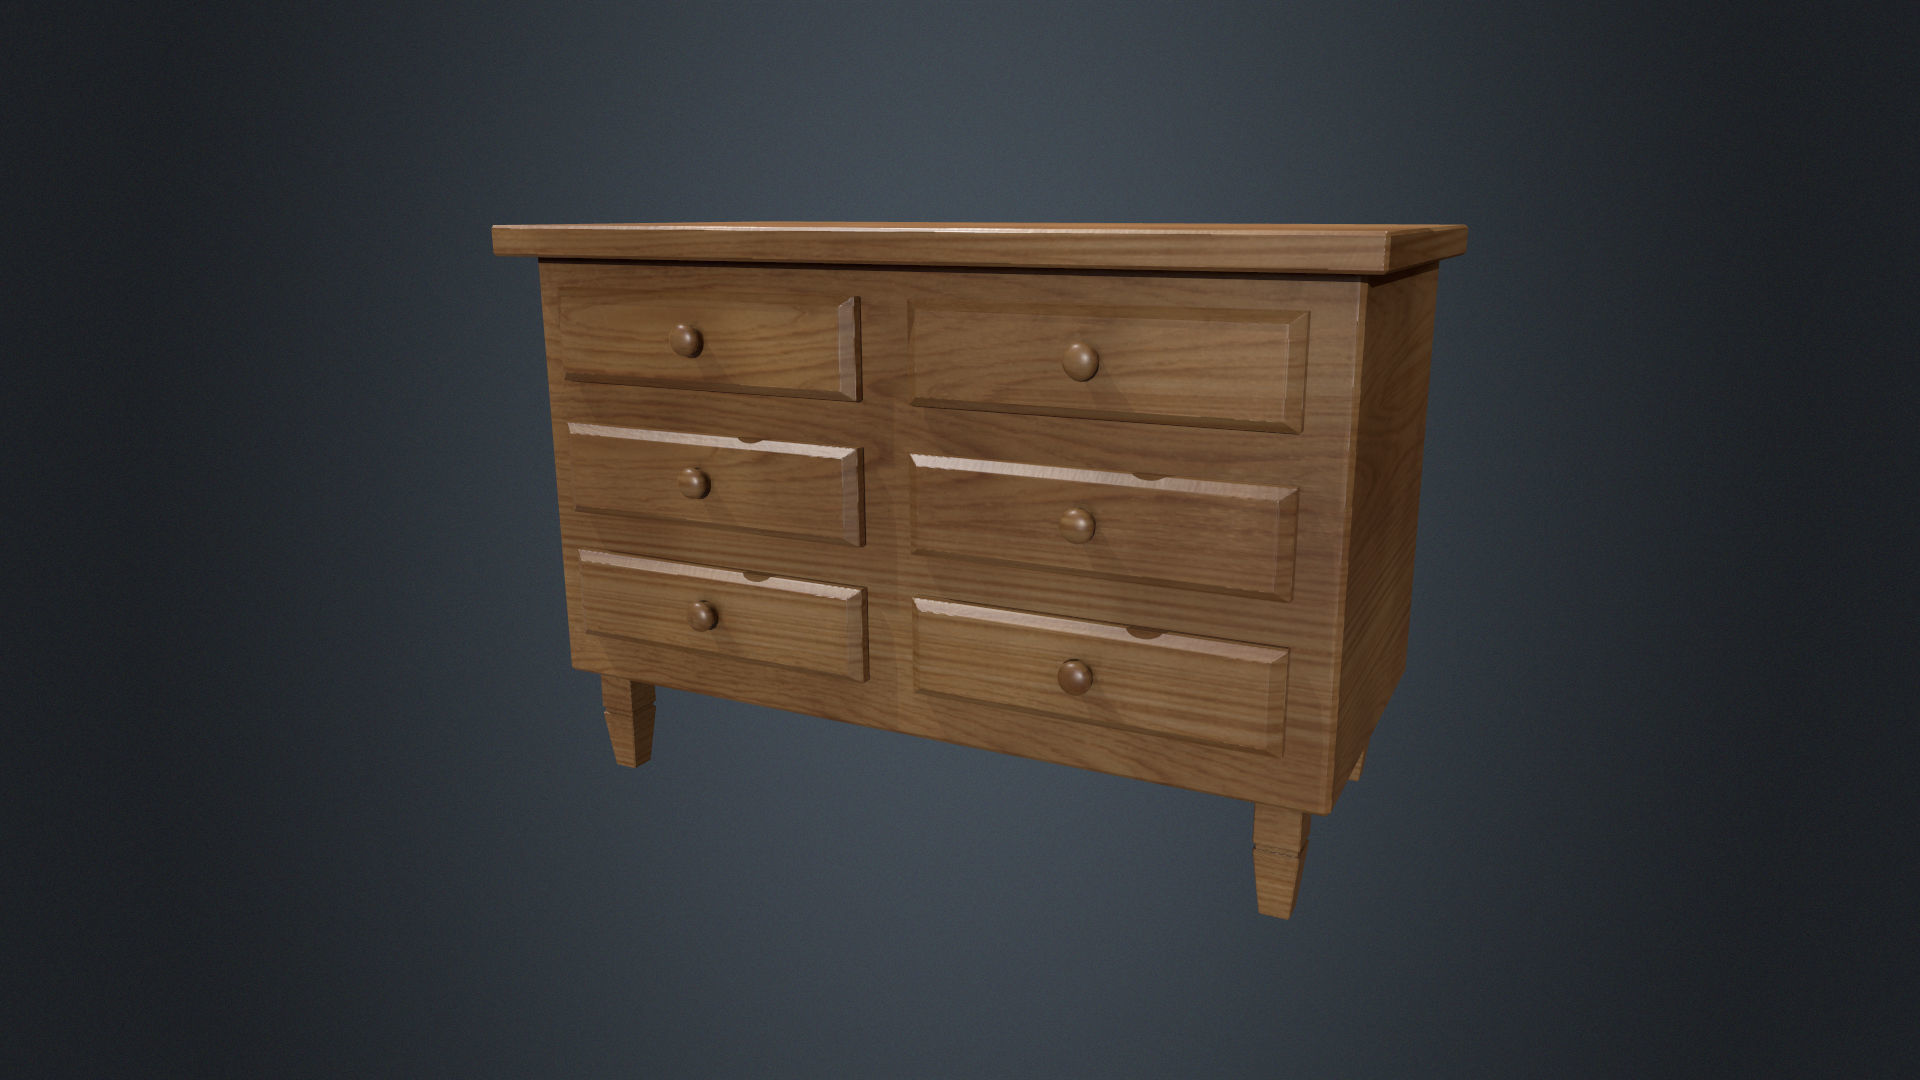 Incredible Beech Wood Chest Of Drawers Dresser Bedroom Furniture Wood 3D Model Download Free Architecture Designs Scobabritishbridgeorg